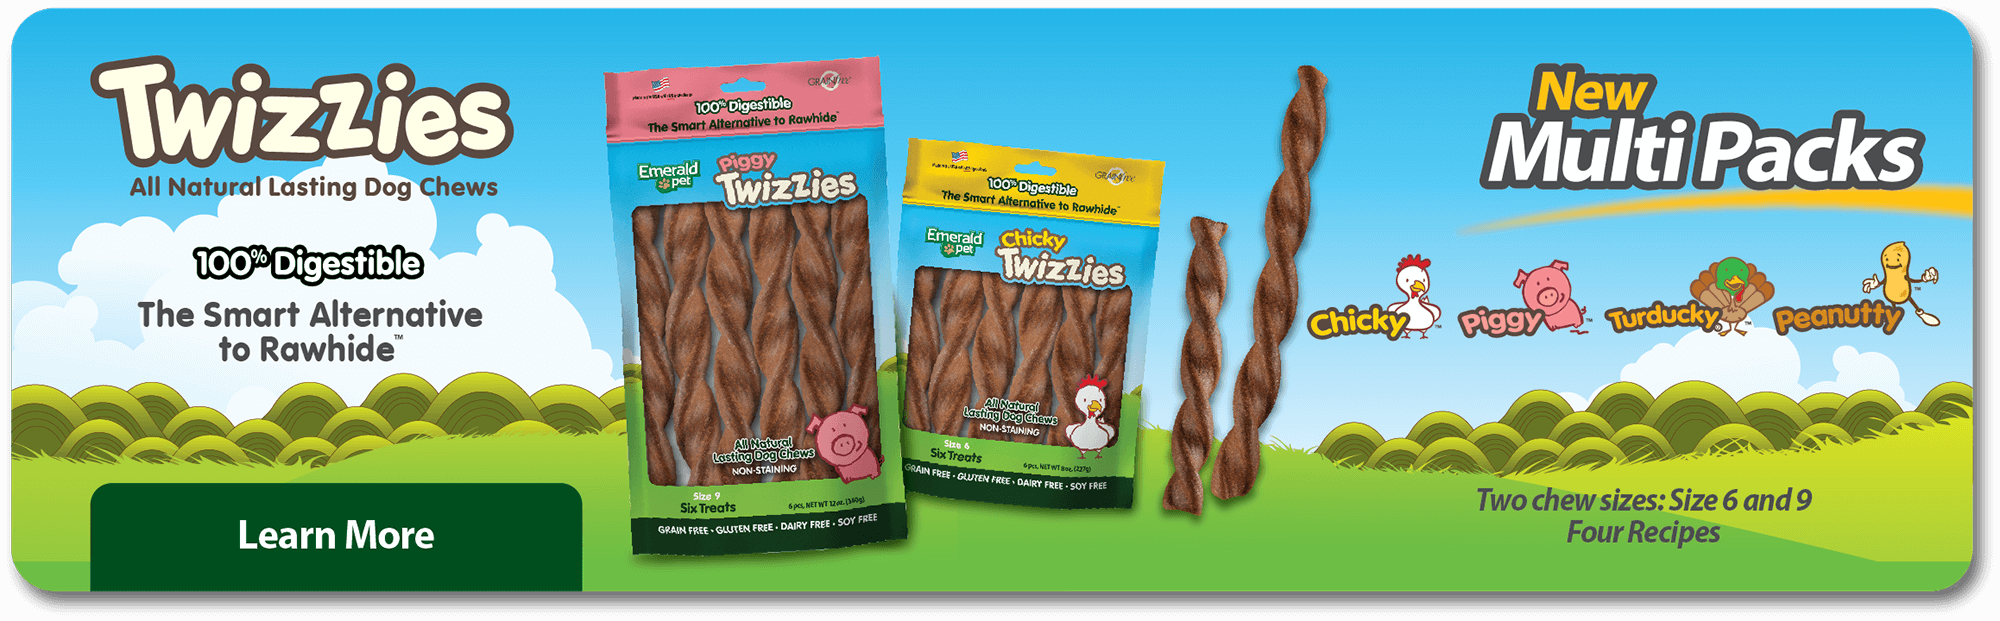 Twizzies all natural lasting dog chews